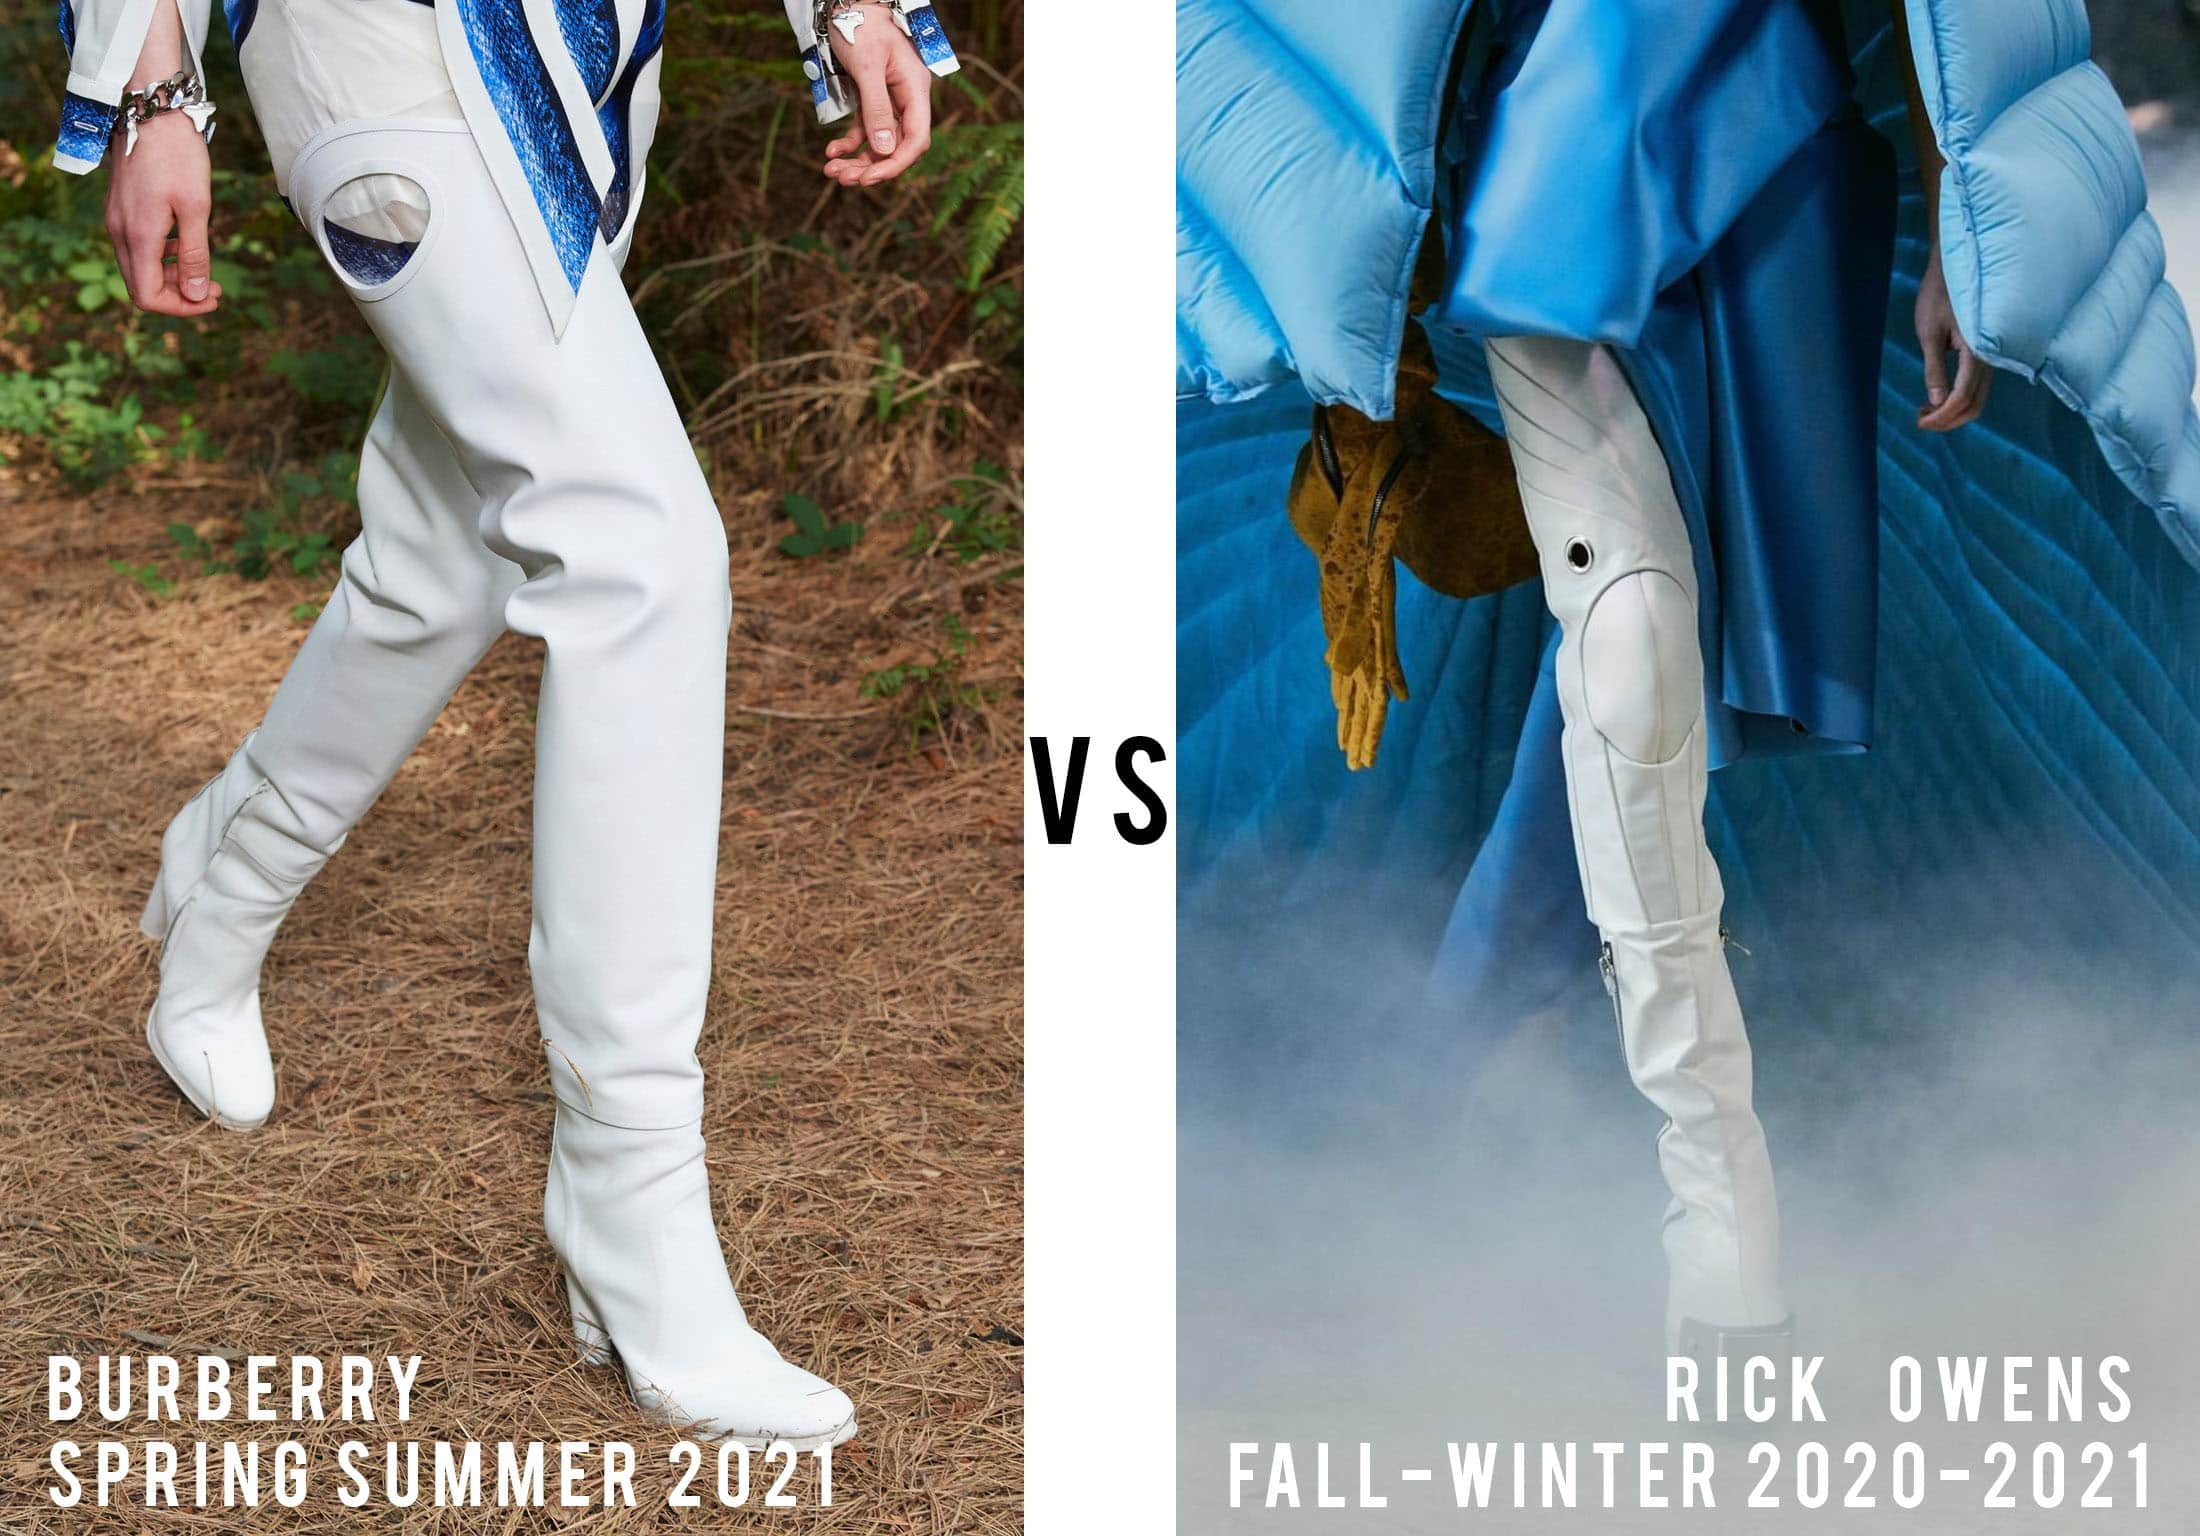 Burberry Spring Summer 2021 vs Rick Owens Fall-Winter 2020-2021